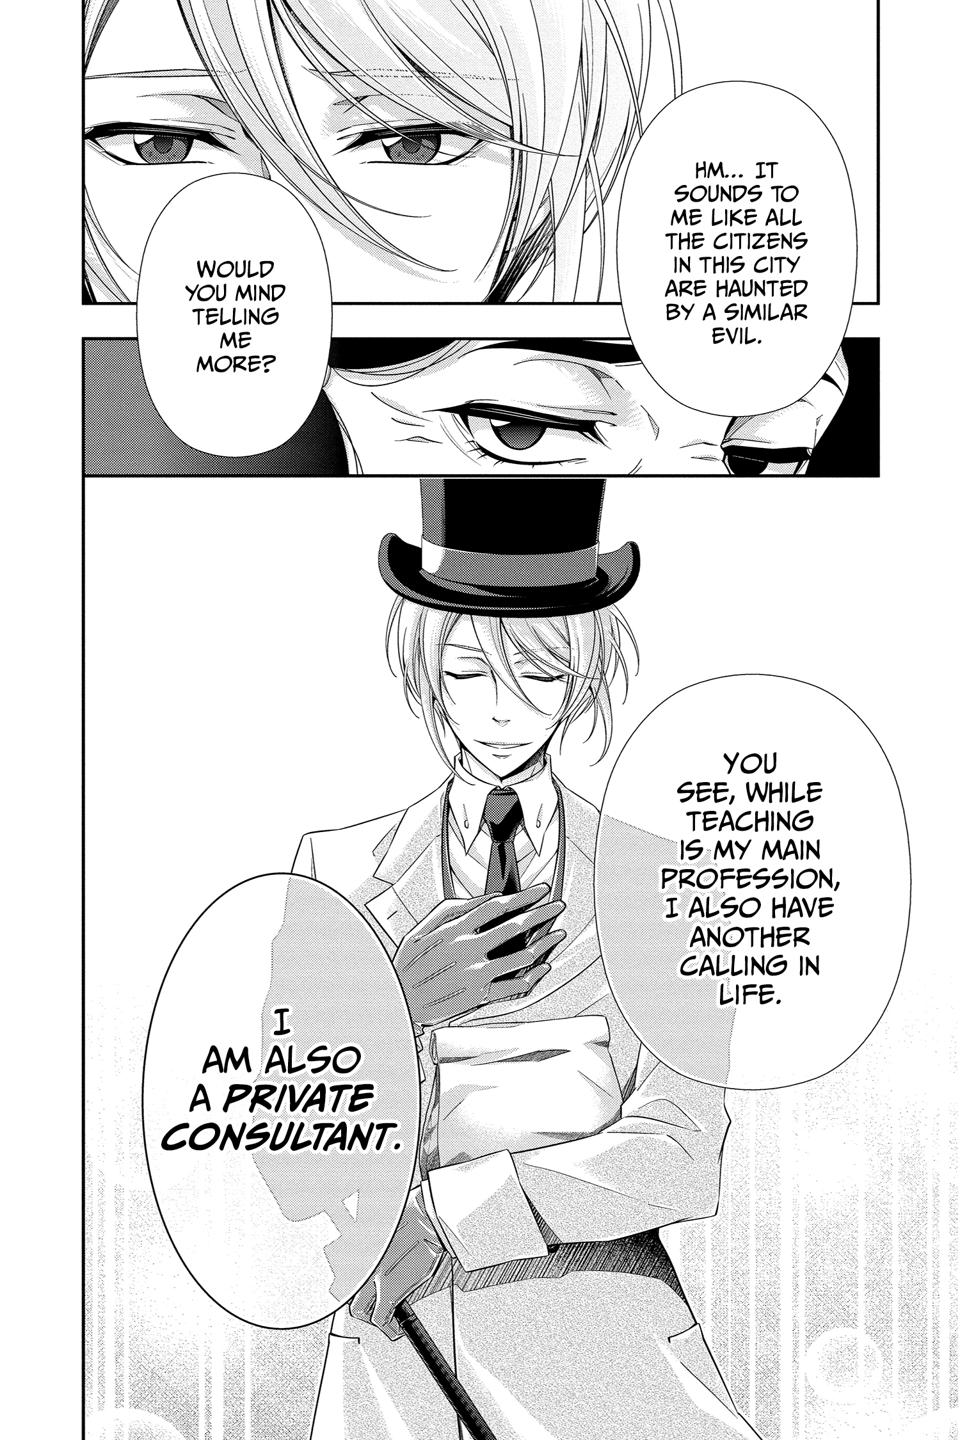 Page 88 of the manga, featuring Moriarty as a private consultant.